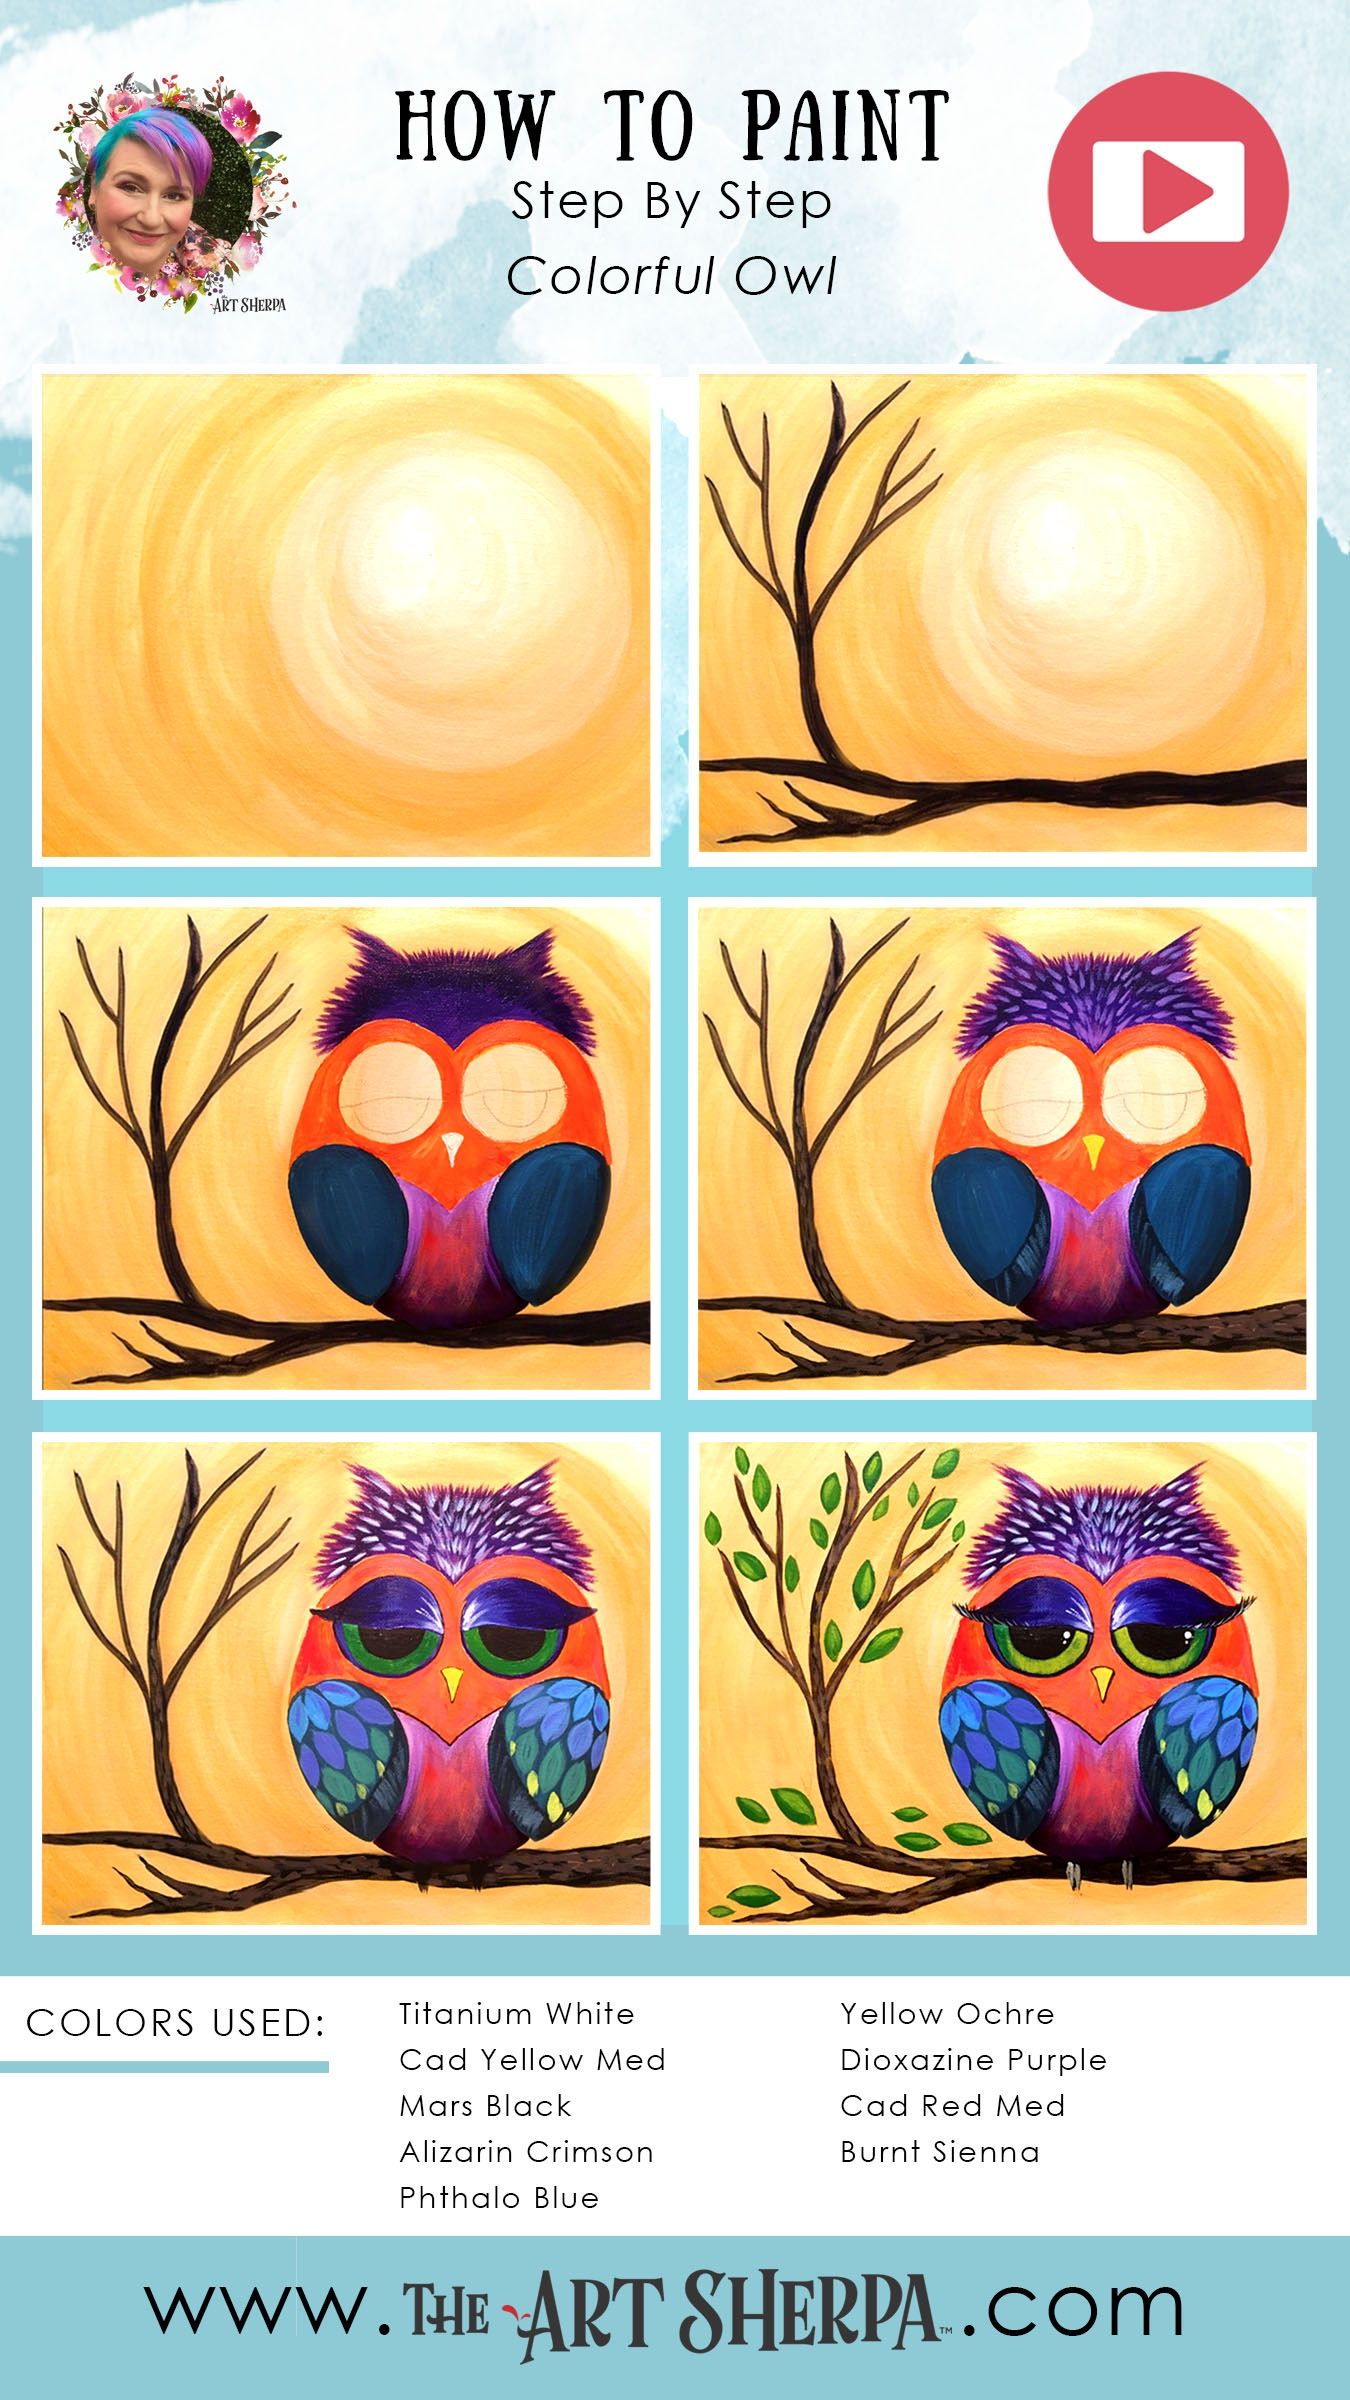 How To Paint A Colorful Owl Step By Canvas Painting Lessons Art Projects